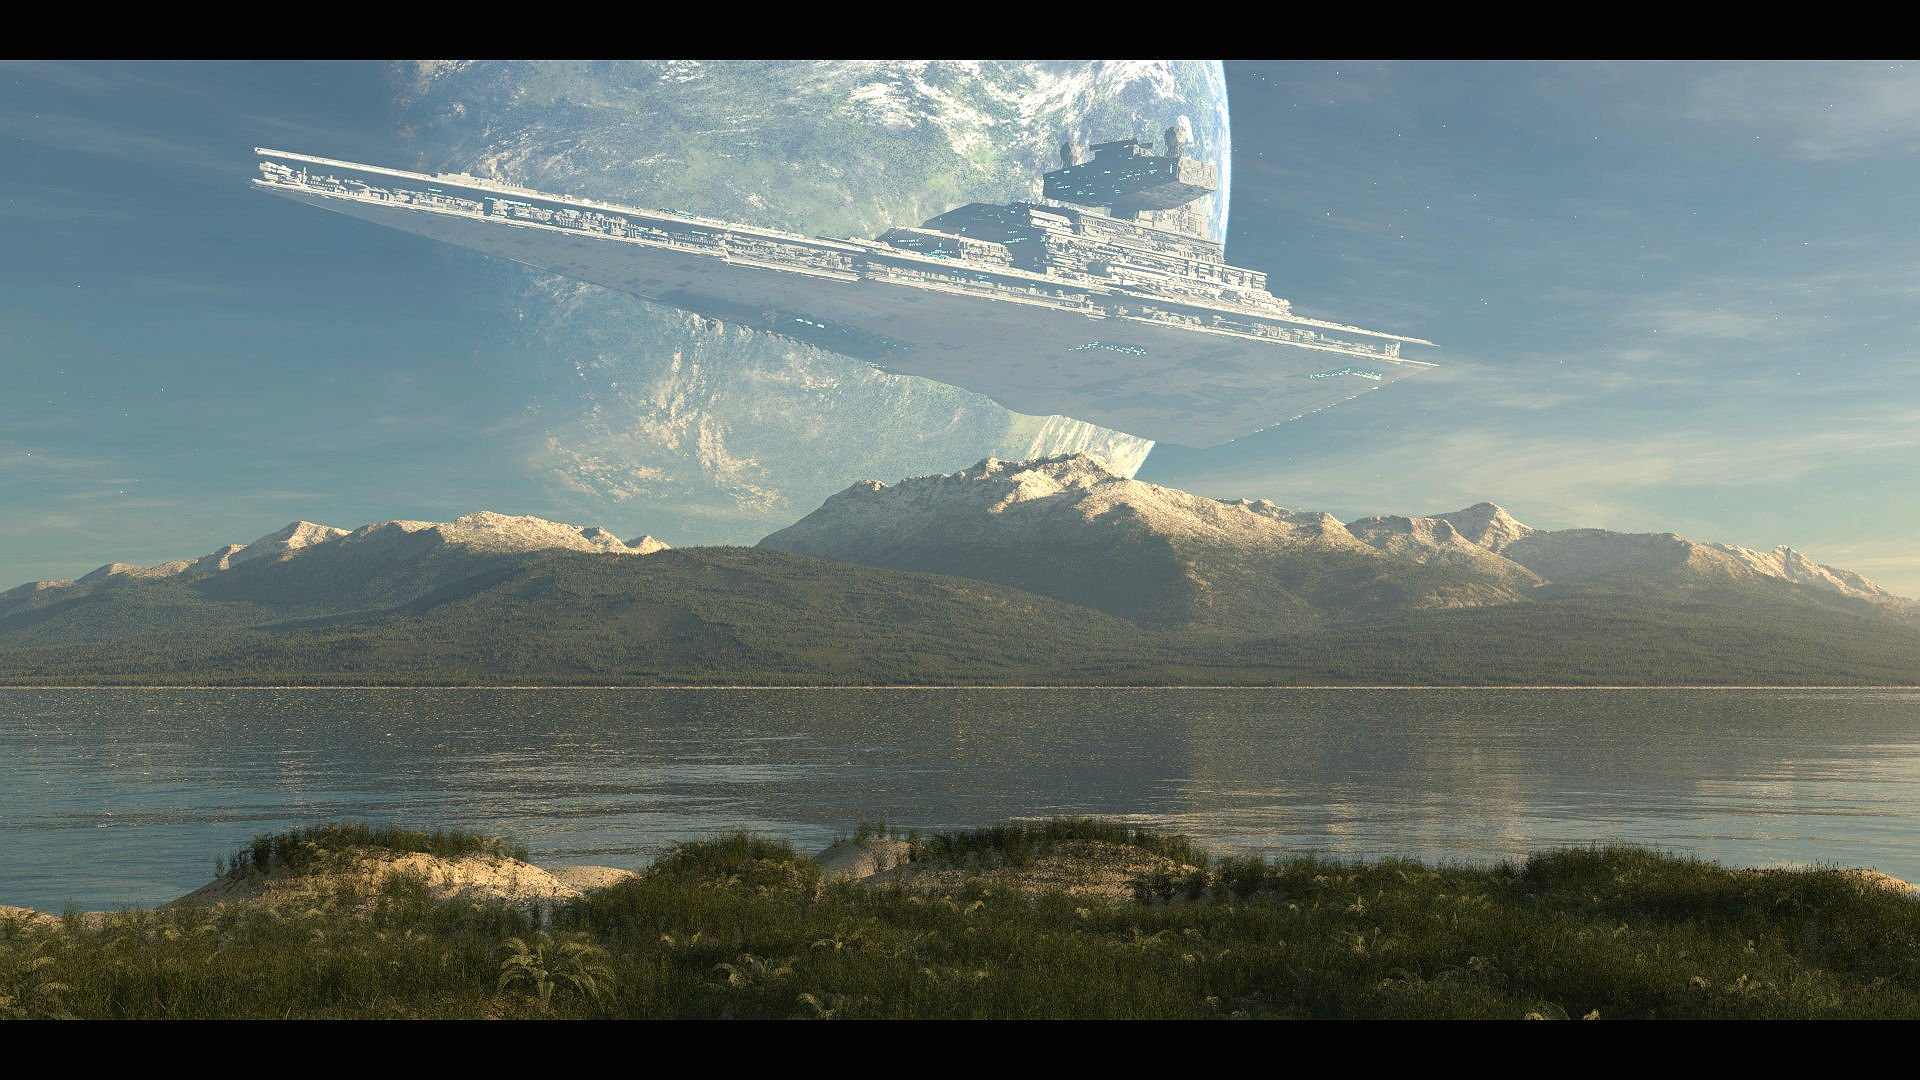 Star Wars Wallpaper Star Destroyer Posted By Ryan Anderson